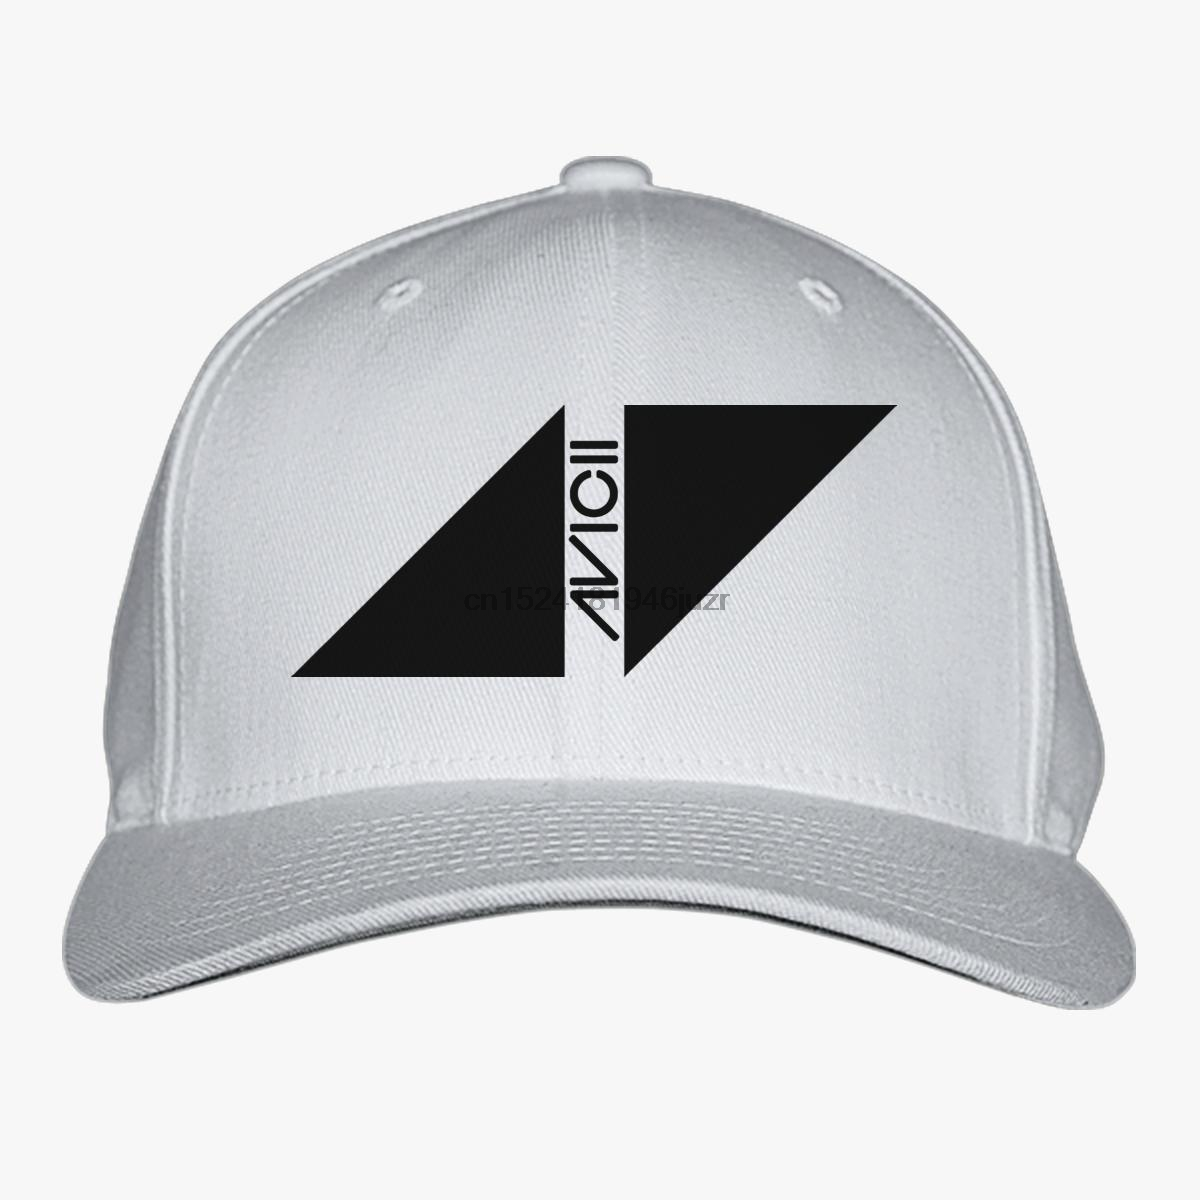 ee13393d03c1 Detail Feedback Questions about hip hop Baseball caps Printed snapback  avicii logo Baseball Cap on Aliexpress.com | alibaba group